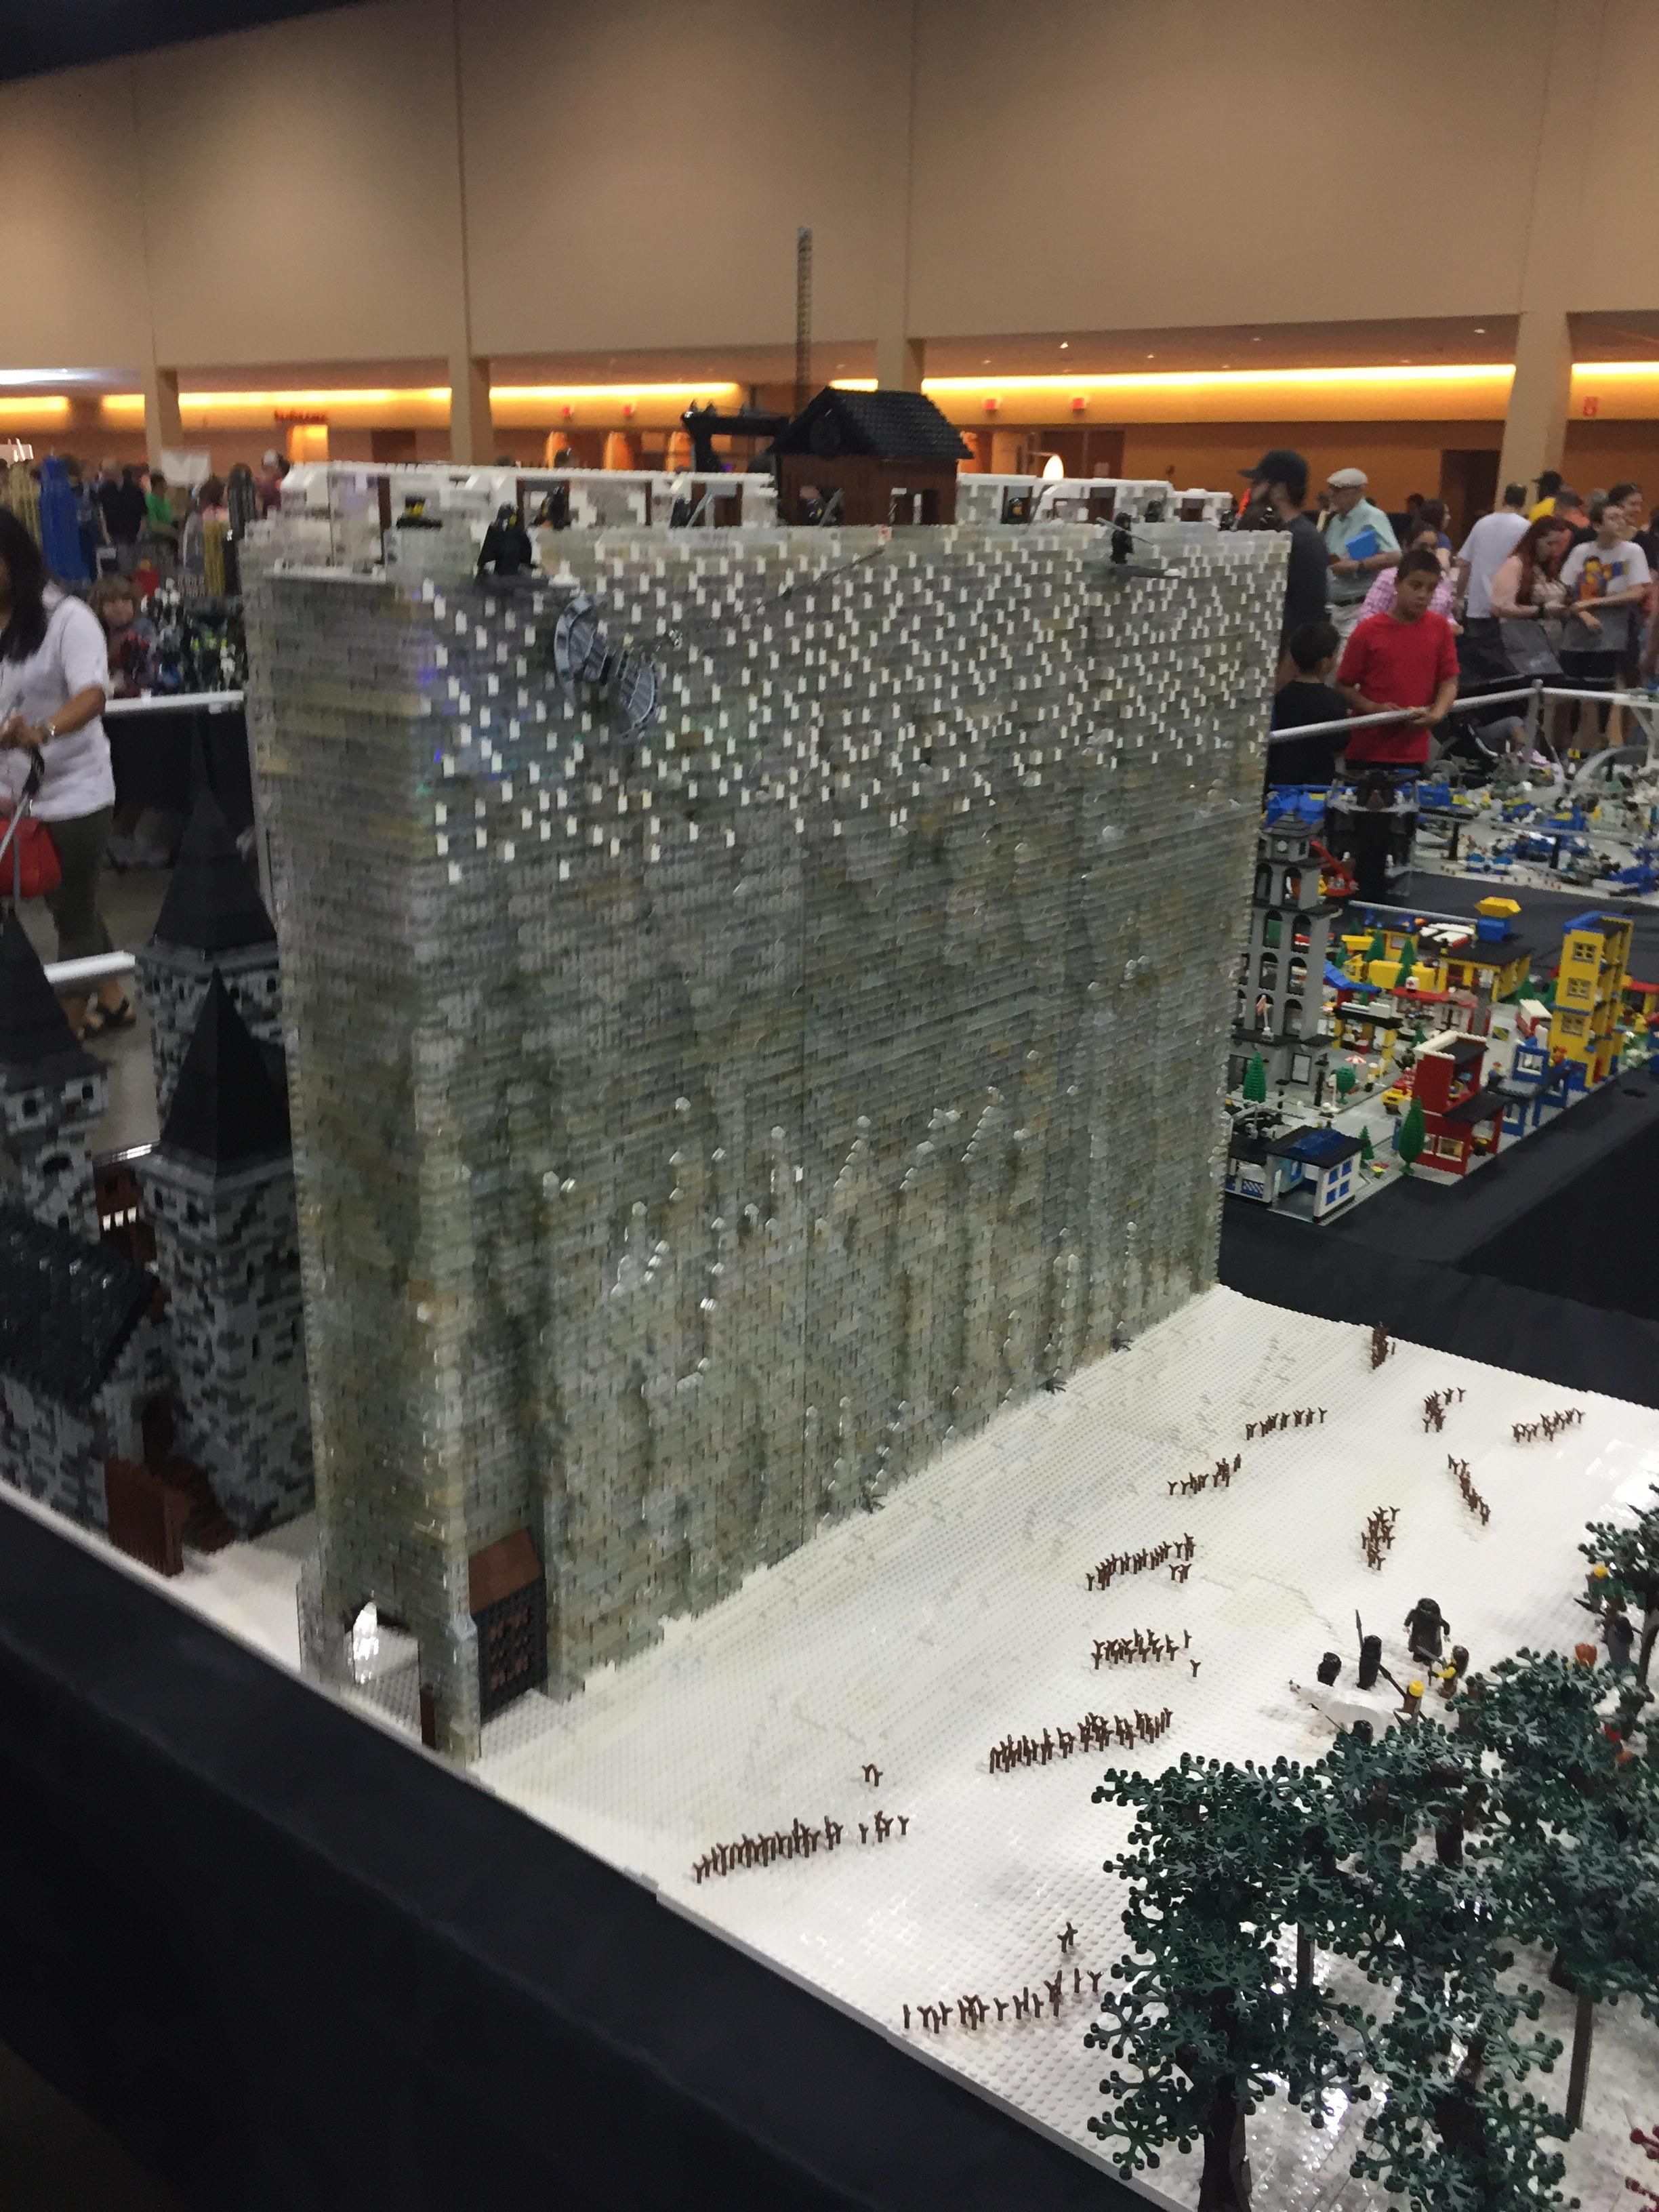 91d13291a29da0 Lego Model of the Wall from Game of Thrones - Album on Imgur